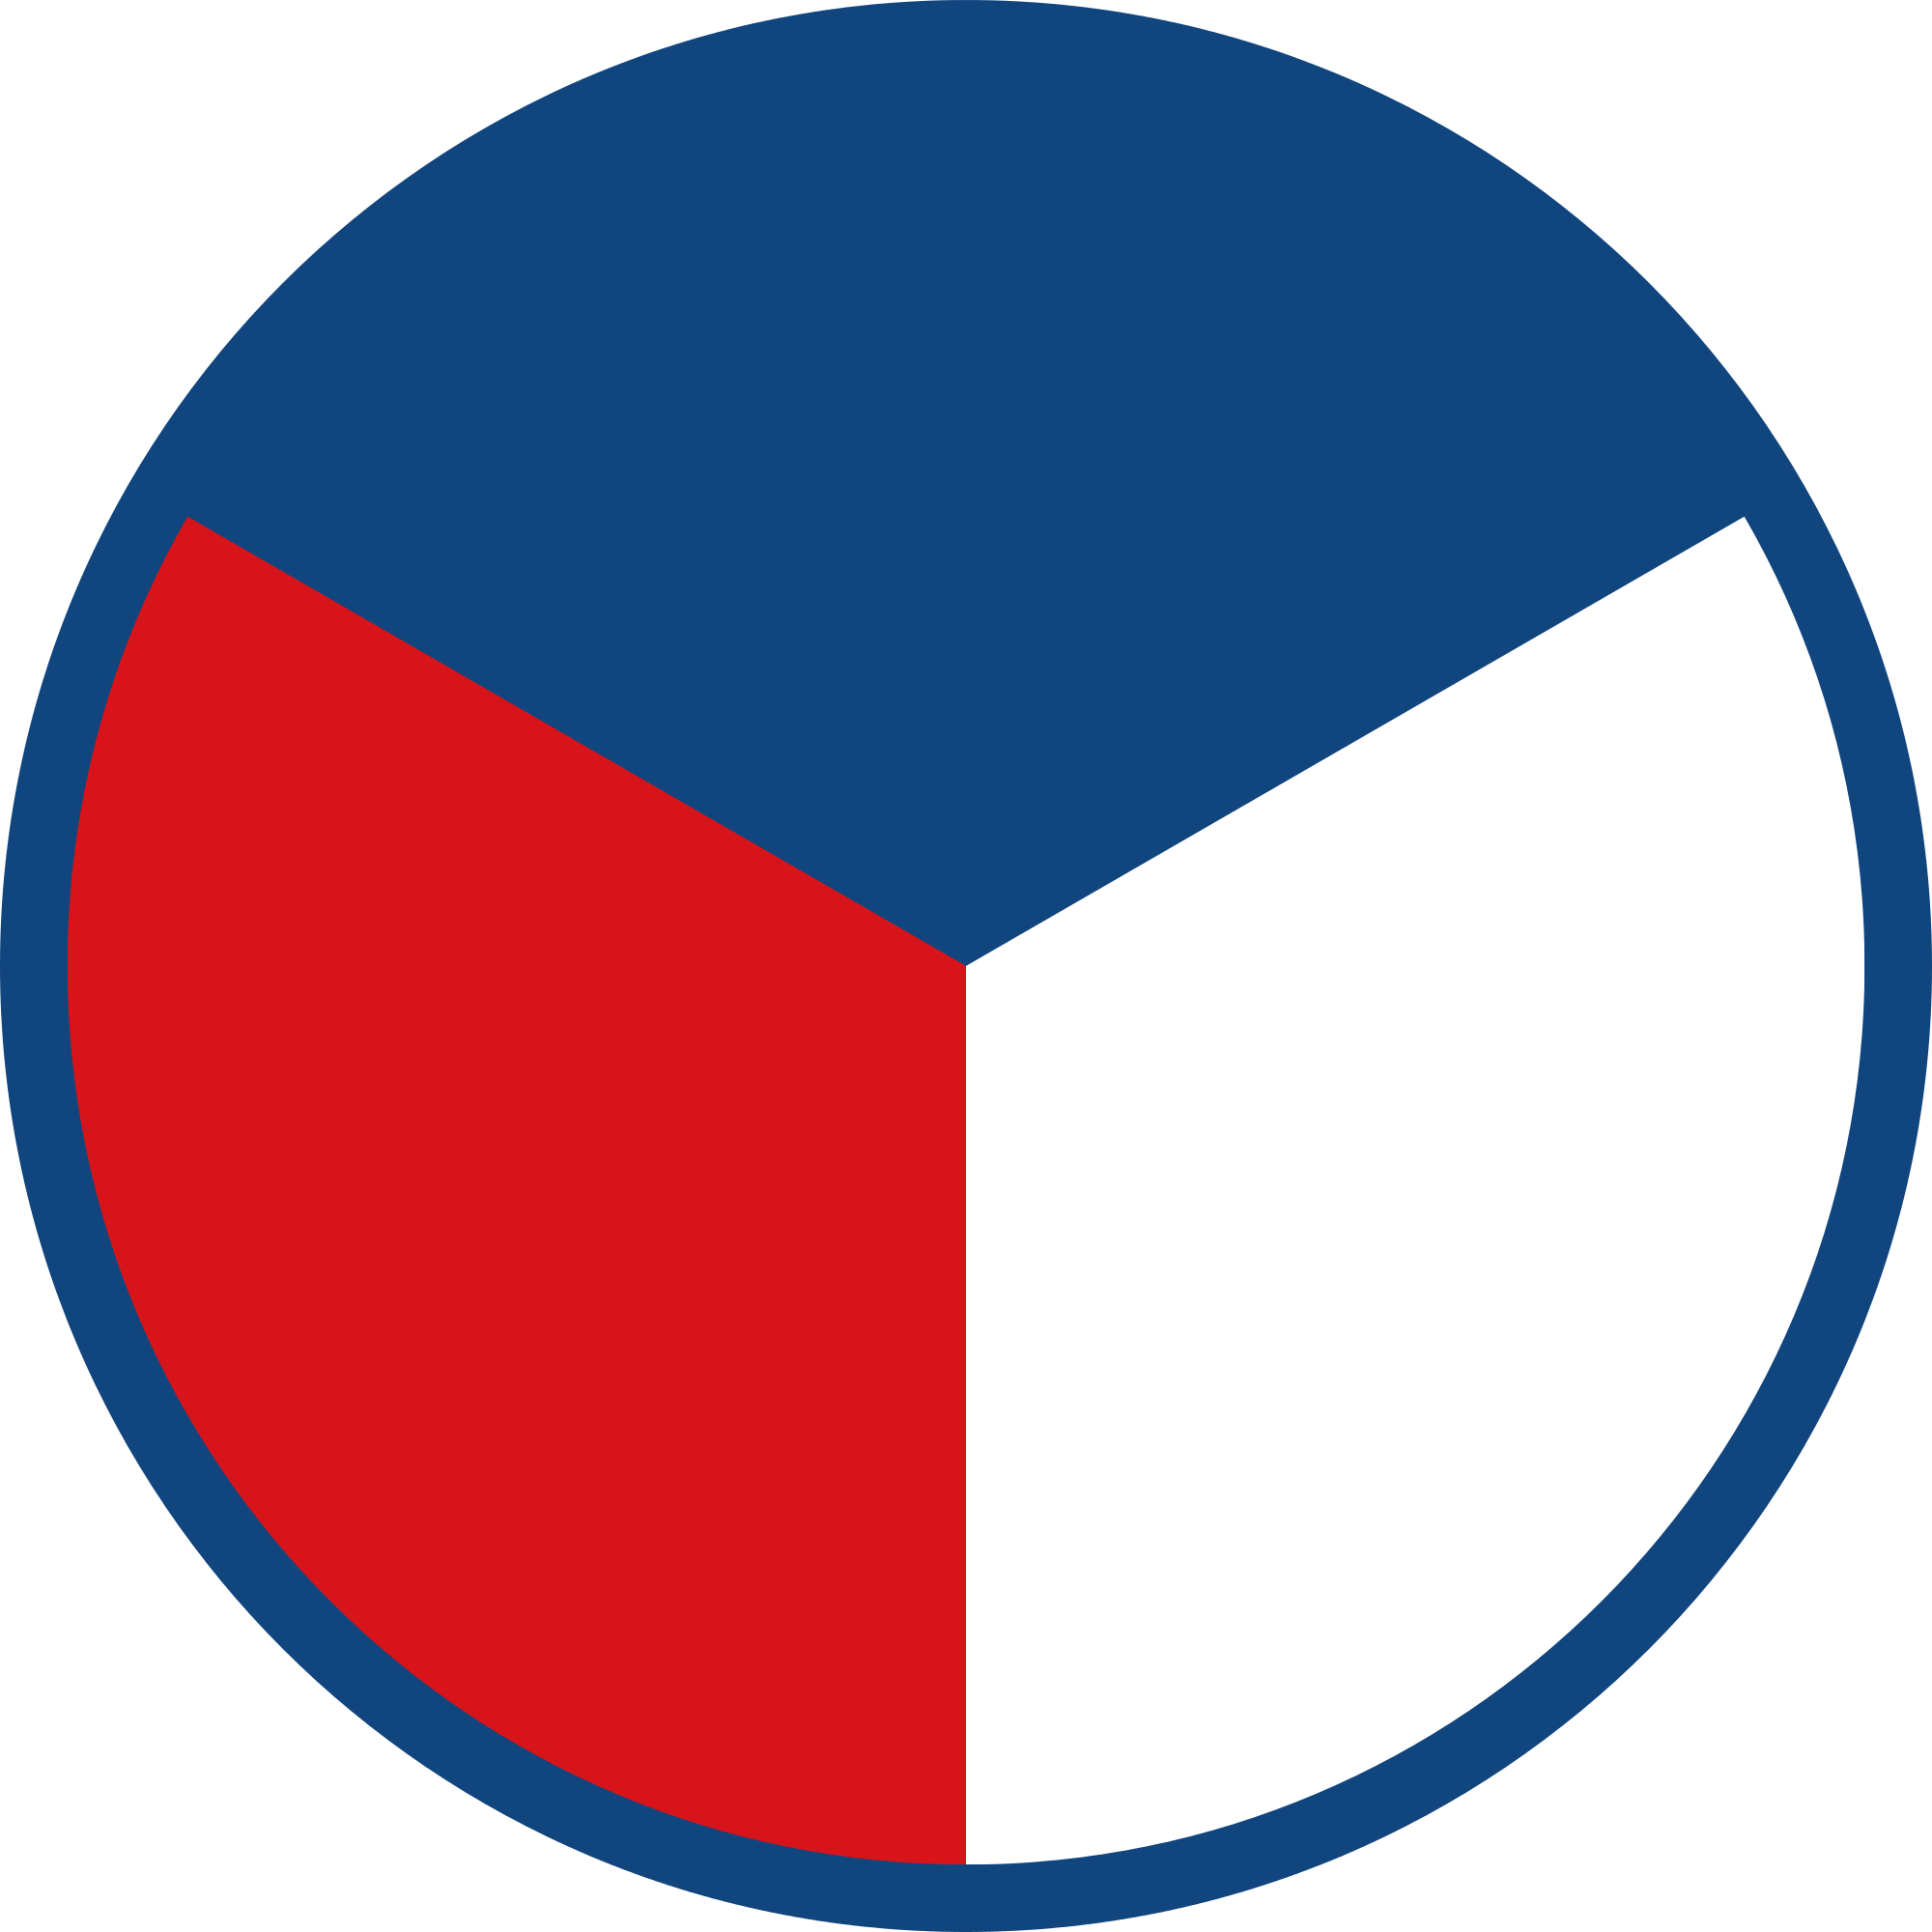 Wing svg right. File czech roundel wikimedia